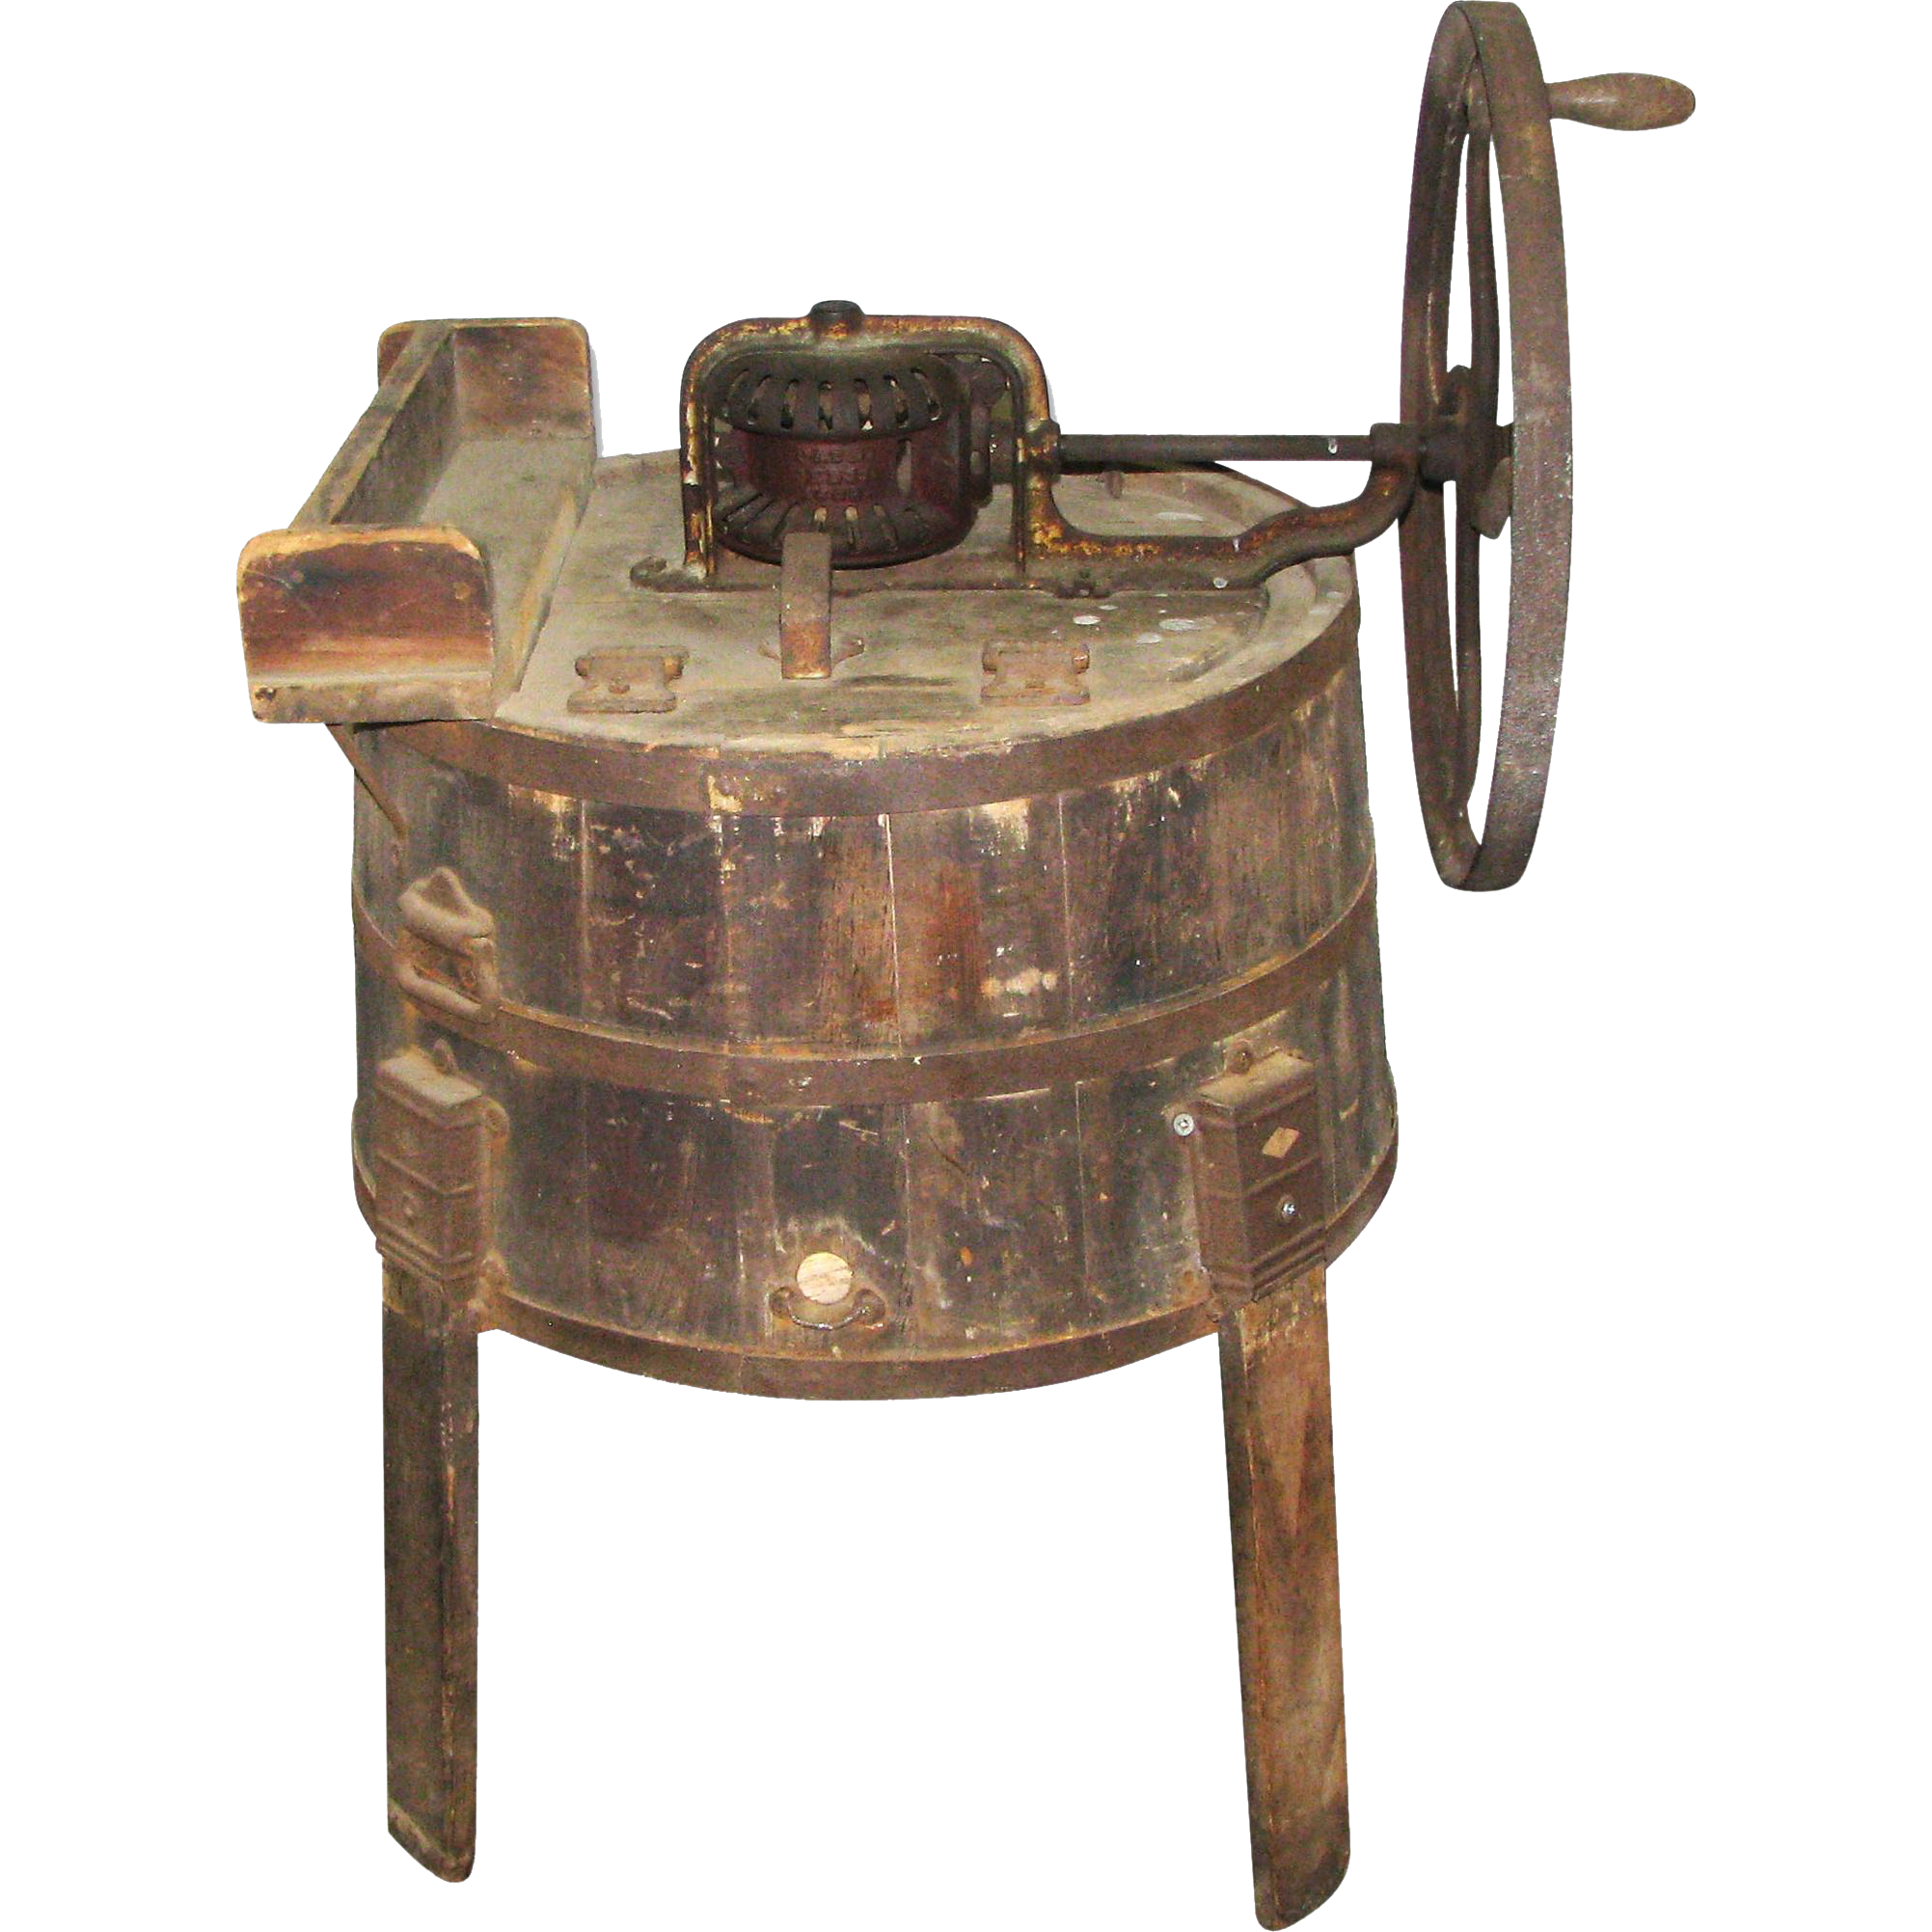 Original antique butter churner